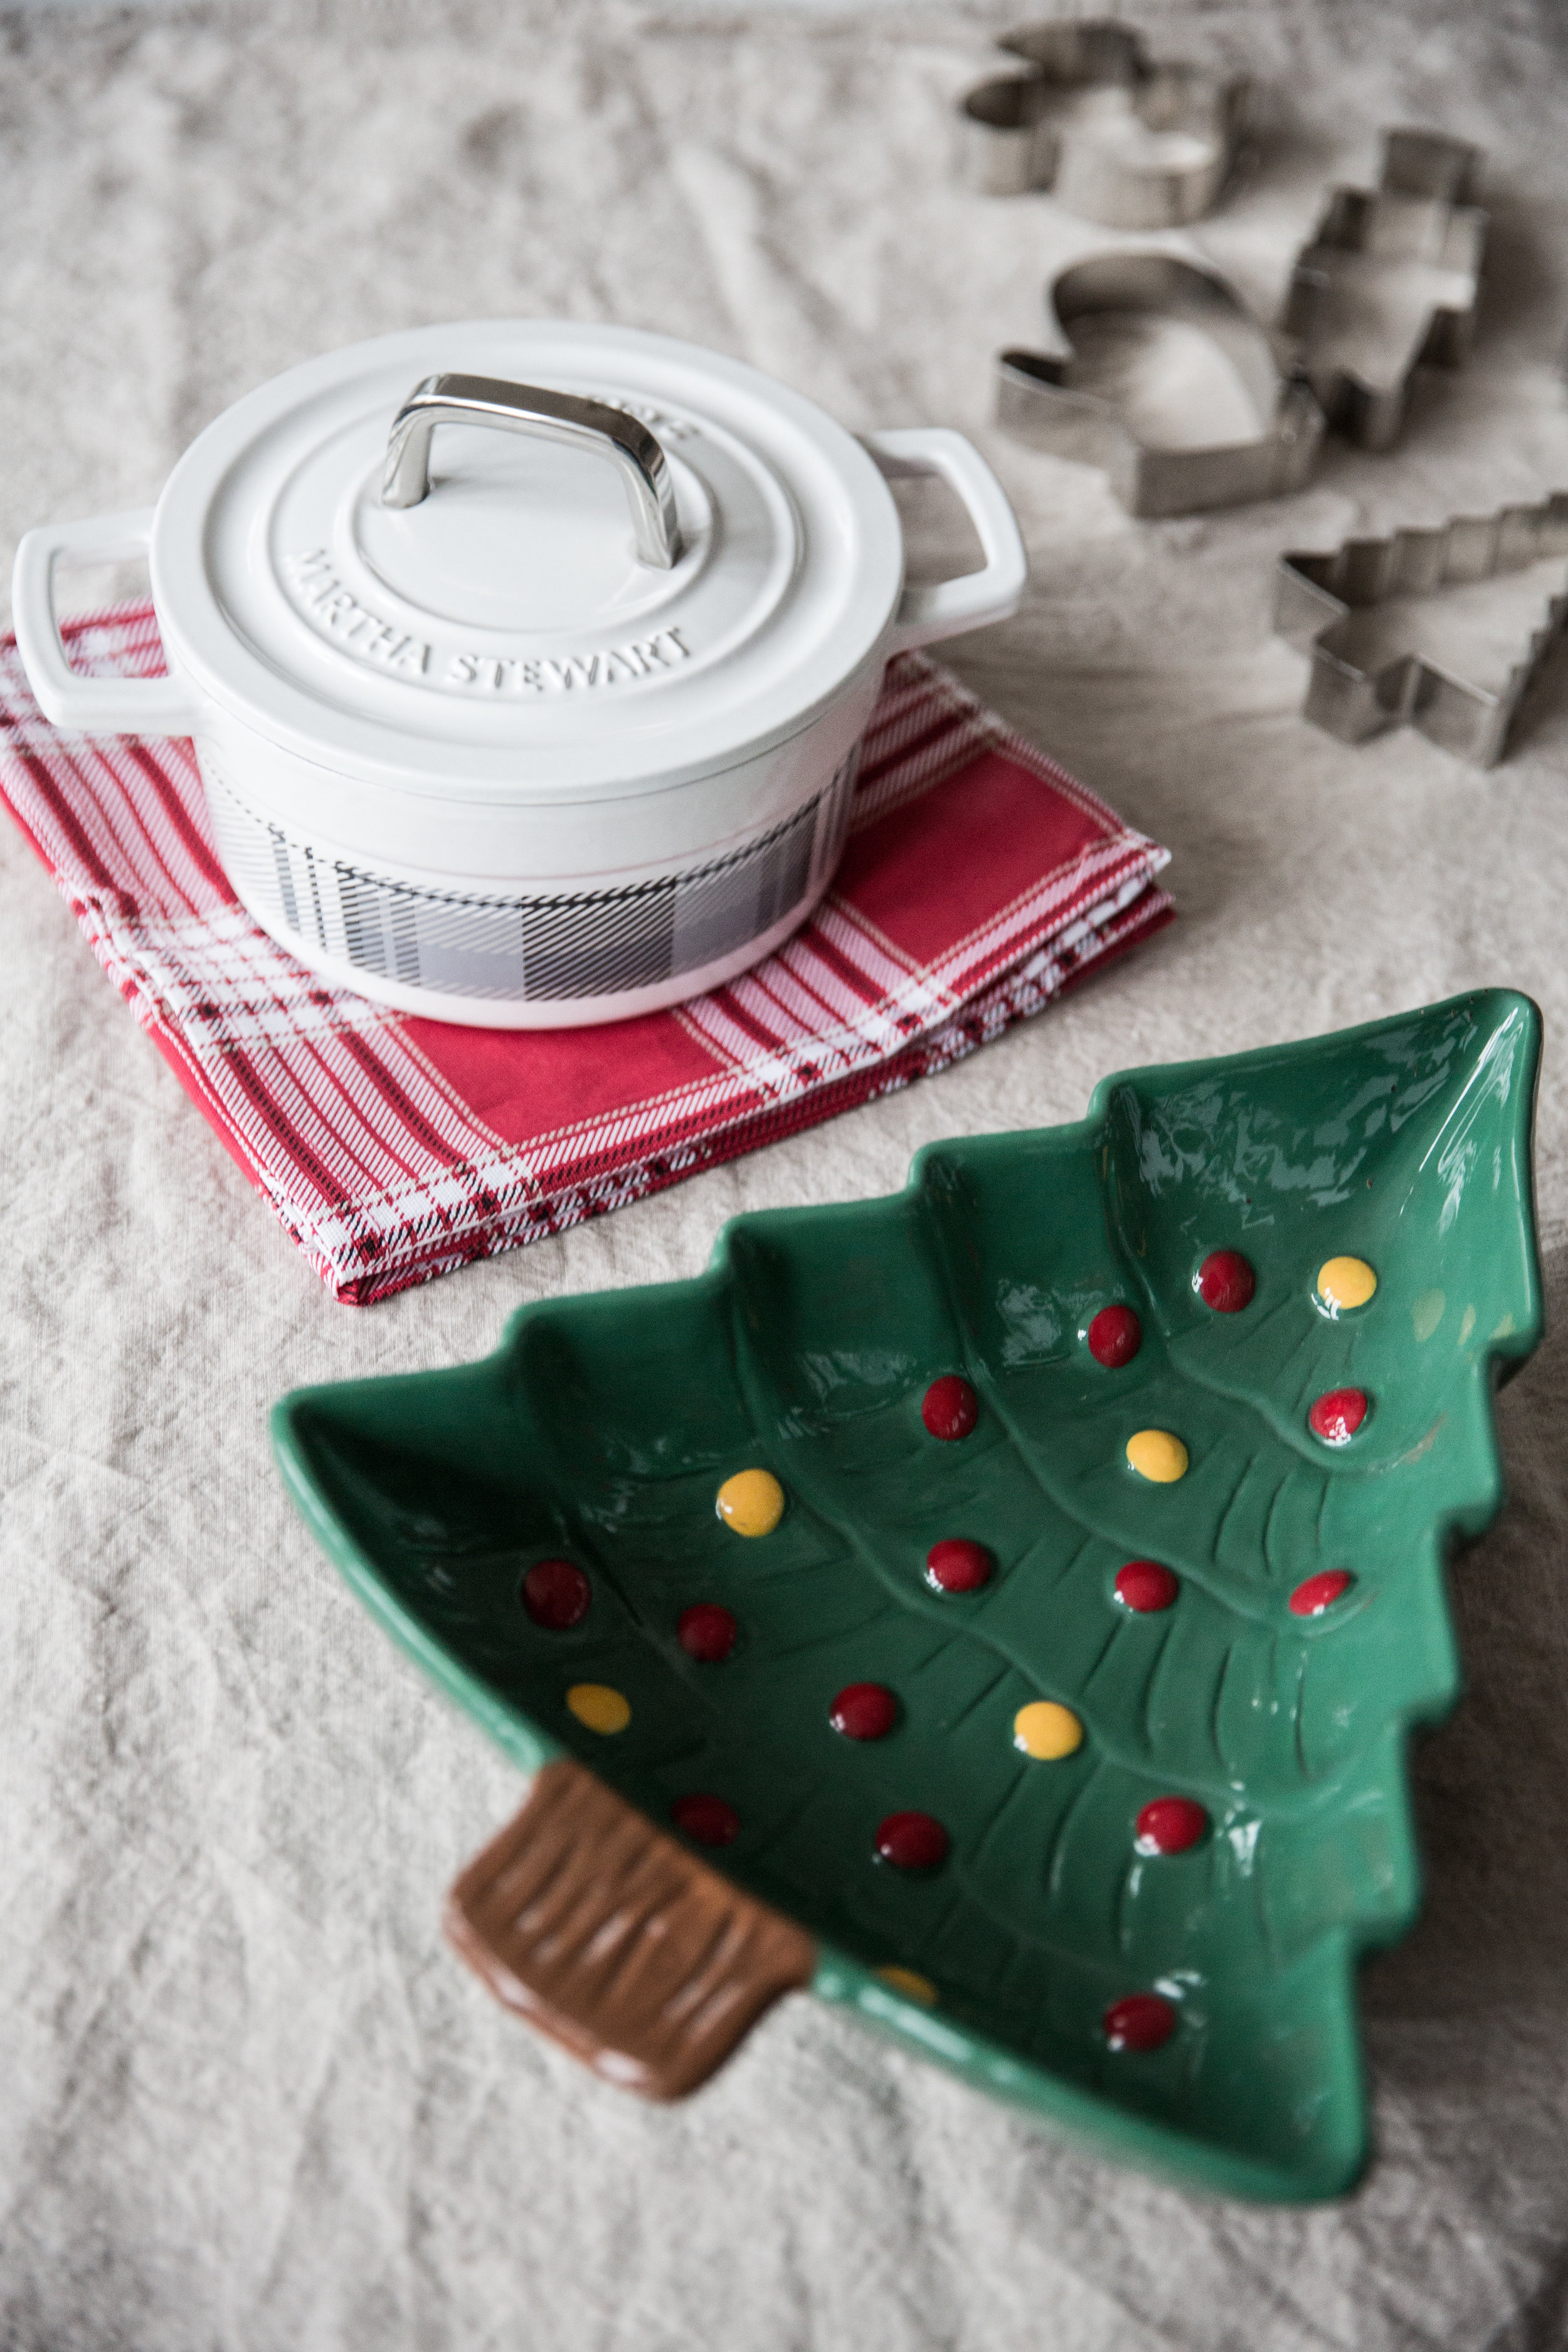 Favorite Things From The Martha Stewart Collection created for Macy's